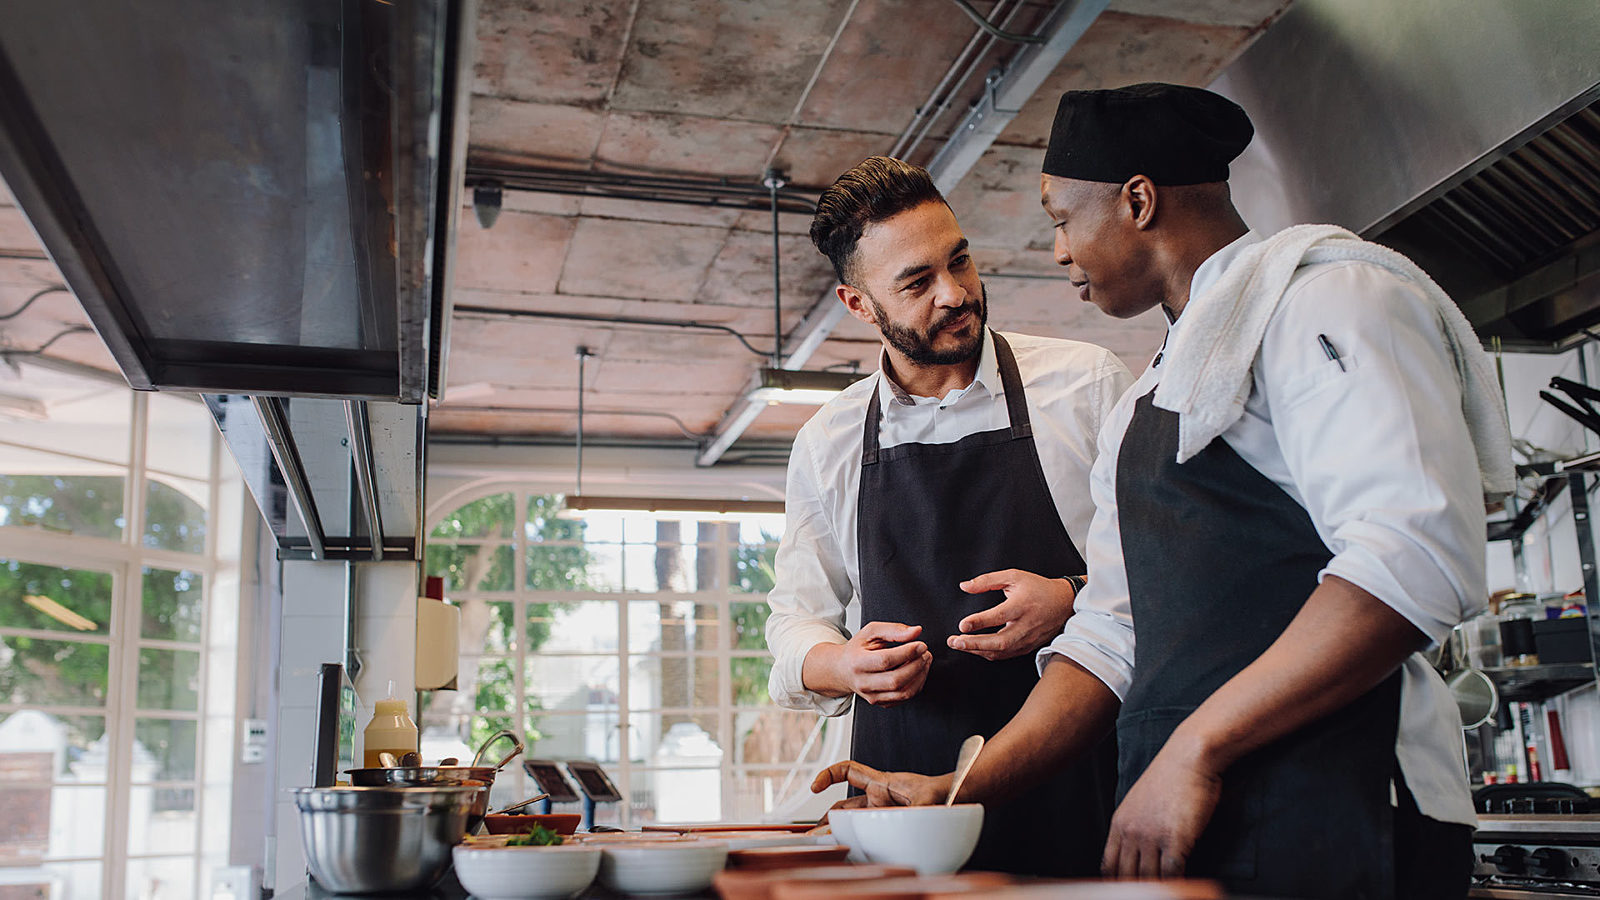 Two employees talking in the kitchen